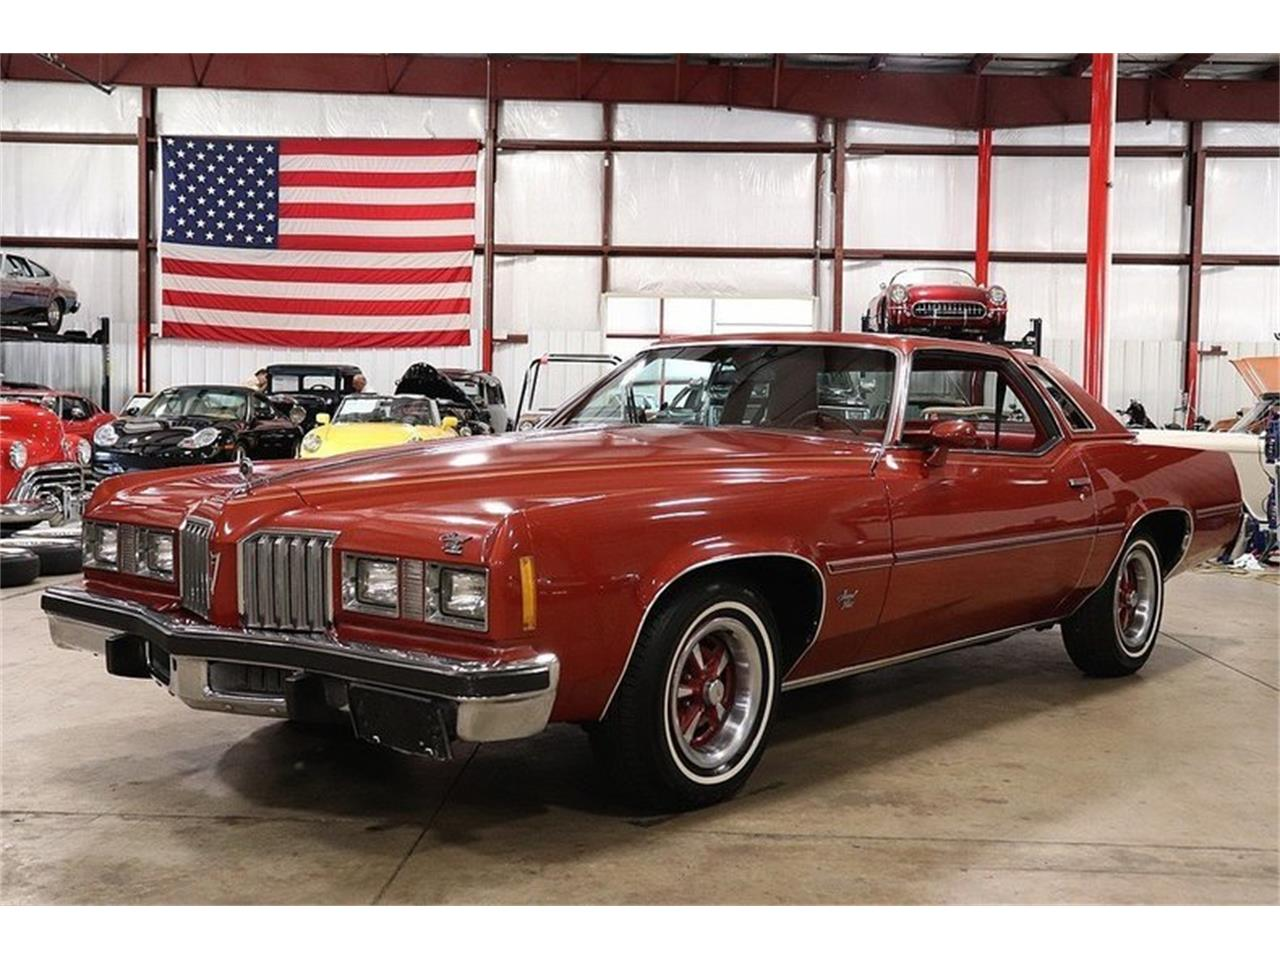 For Sale: 1977 Pontiac Grand Prix in Kentwood, Michigan